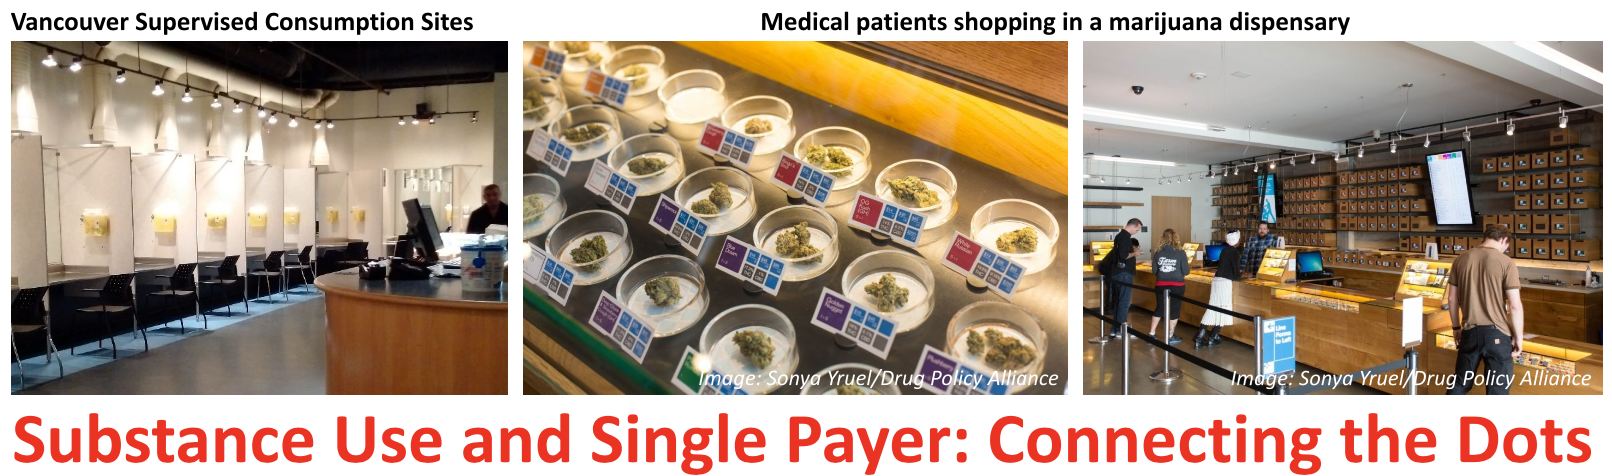 Trio of images with the text: Substance Abuse and Single Payer - Connecting the Dots.  The first image shows supervised injection sites in Vancouver, the second two images are different views of a marijuana dispensary.